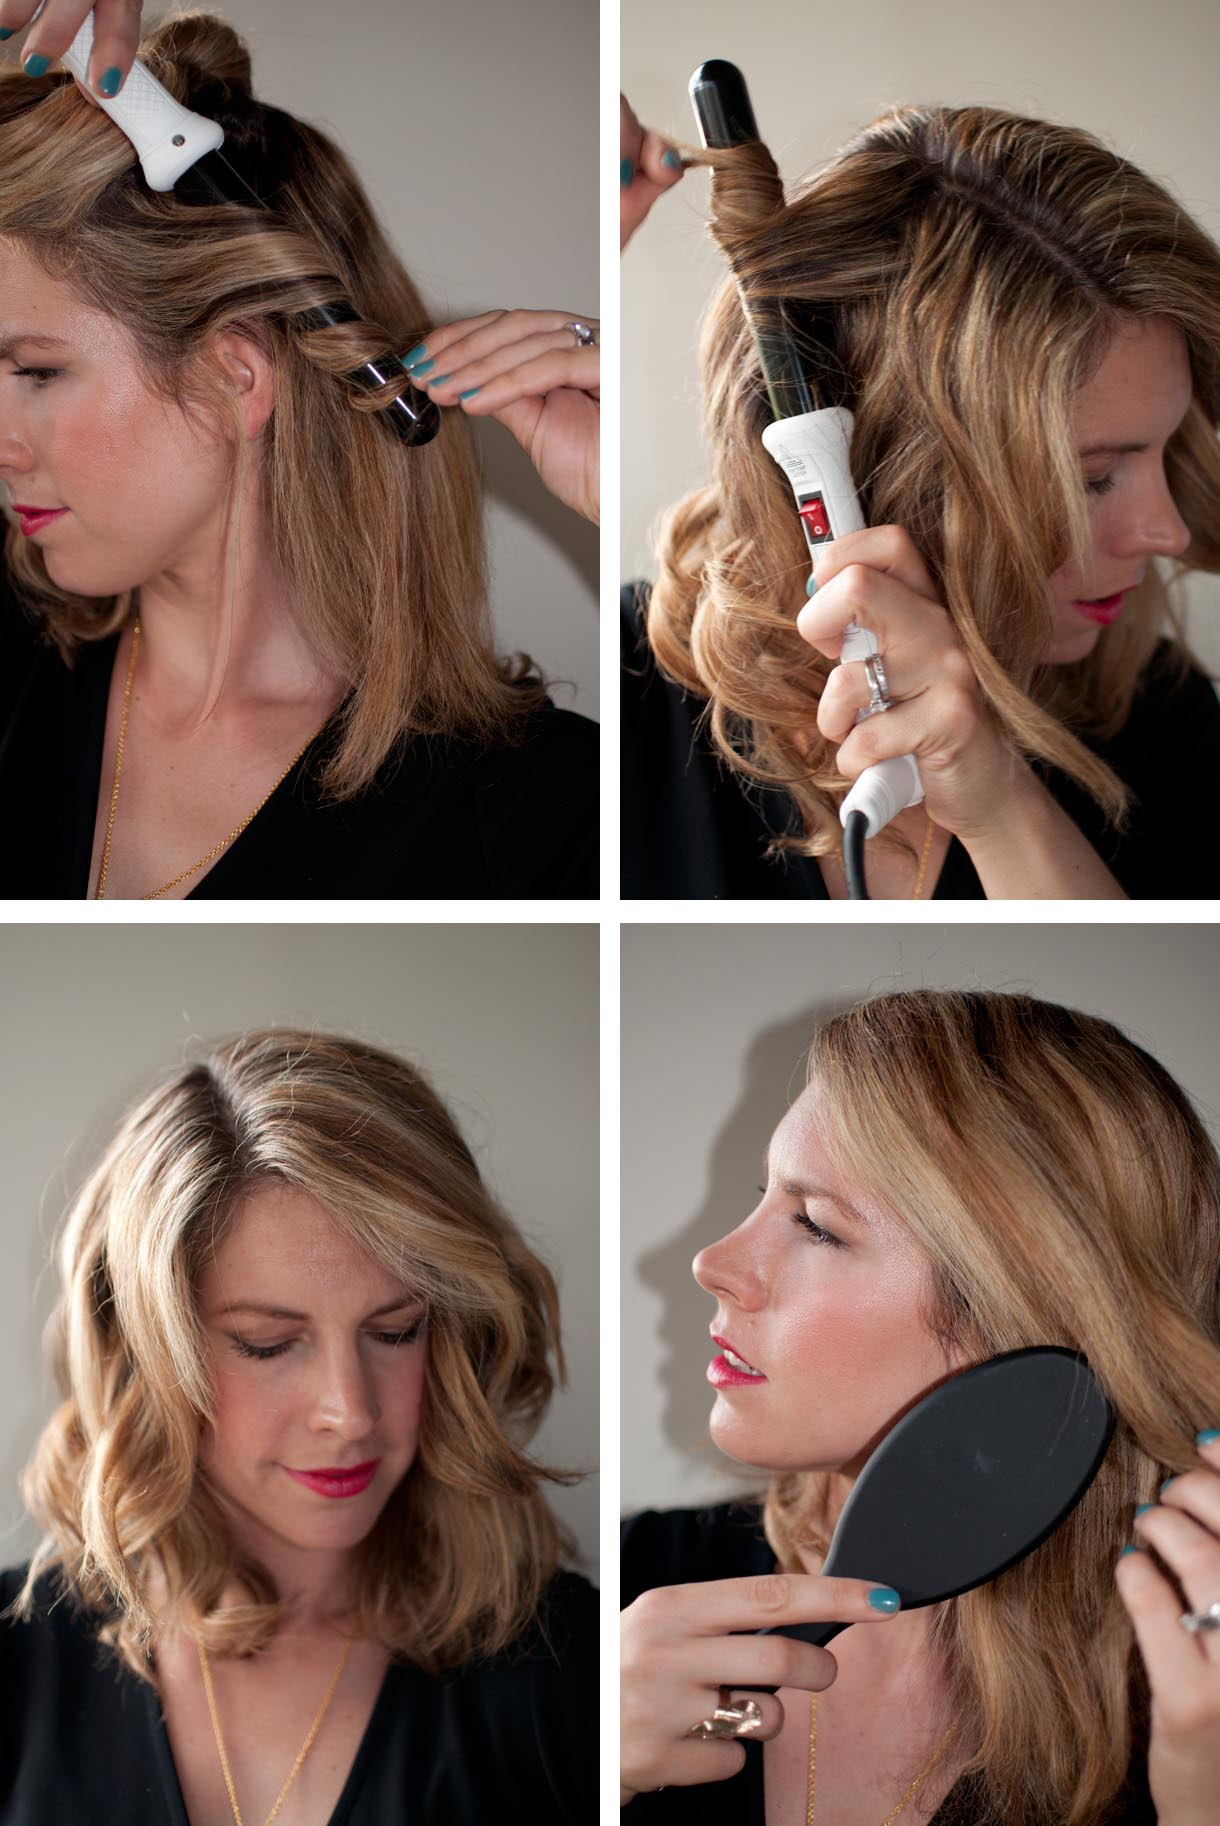 How To Get Perfect Waves With The Modiva Professional Curling Iron Hair Romance